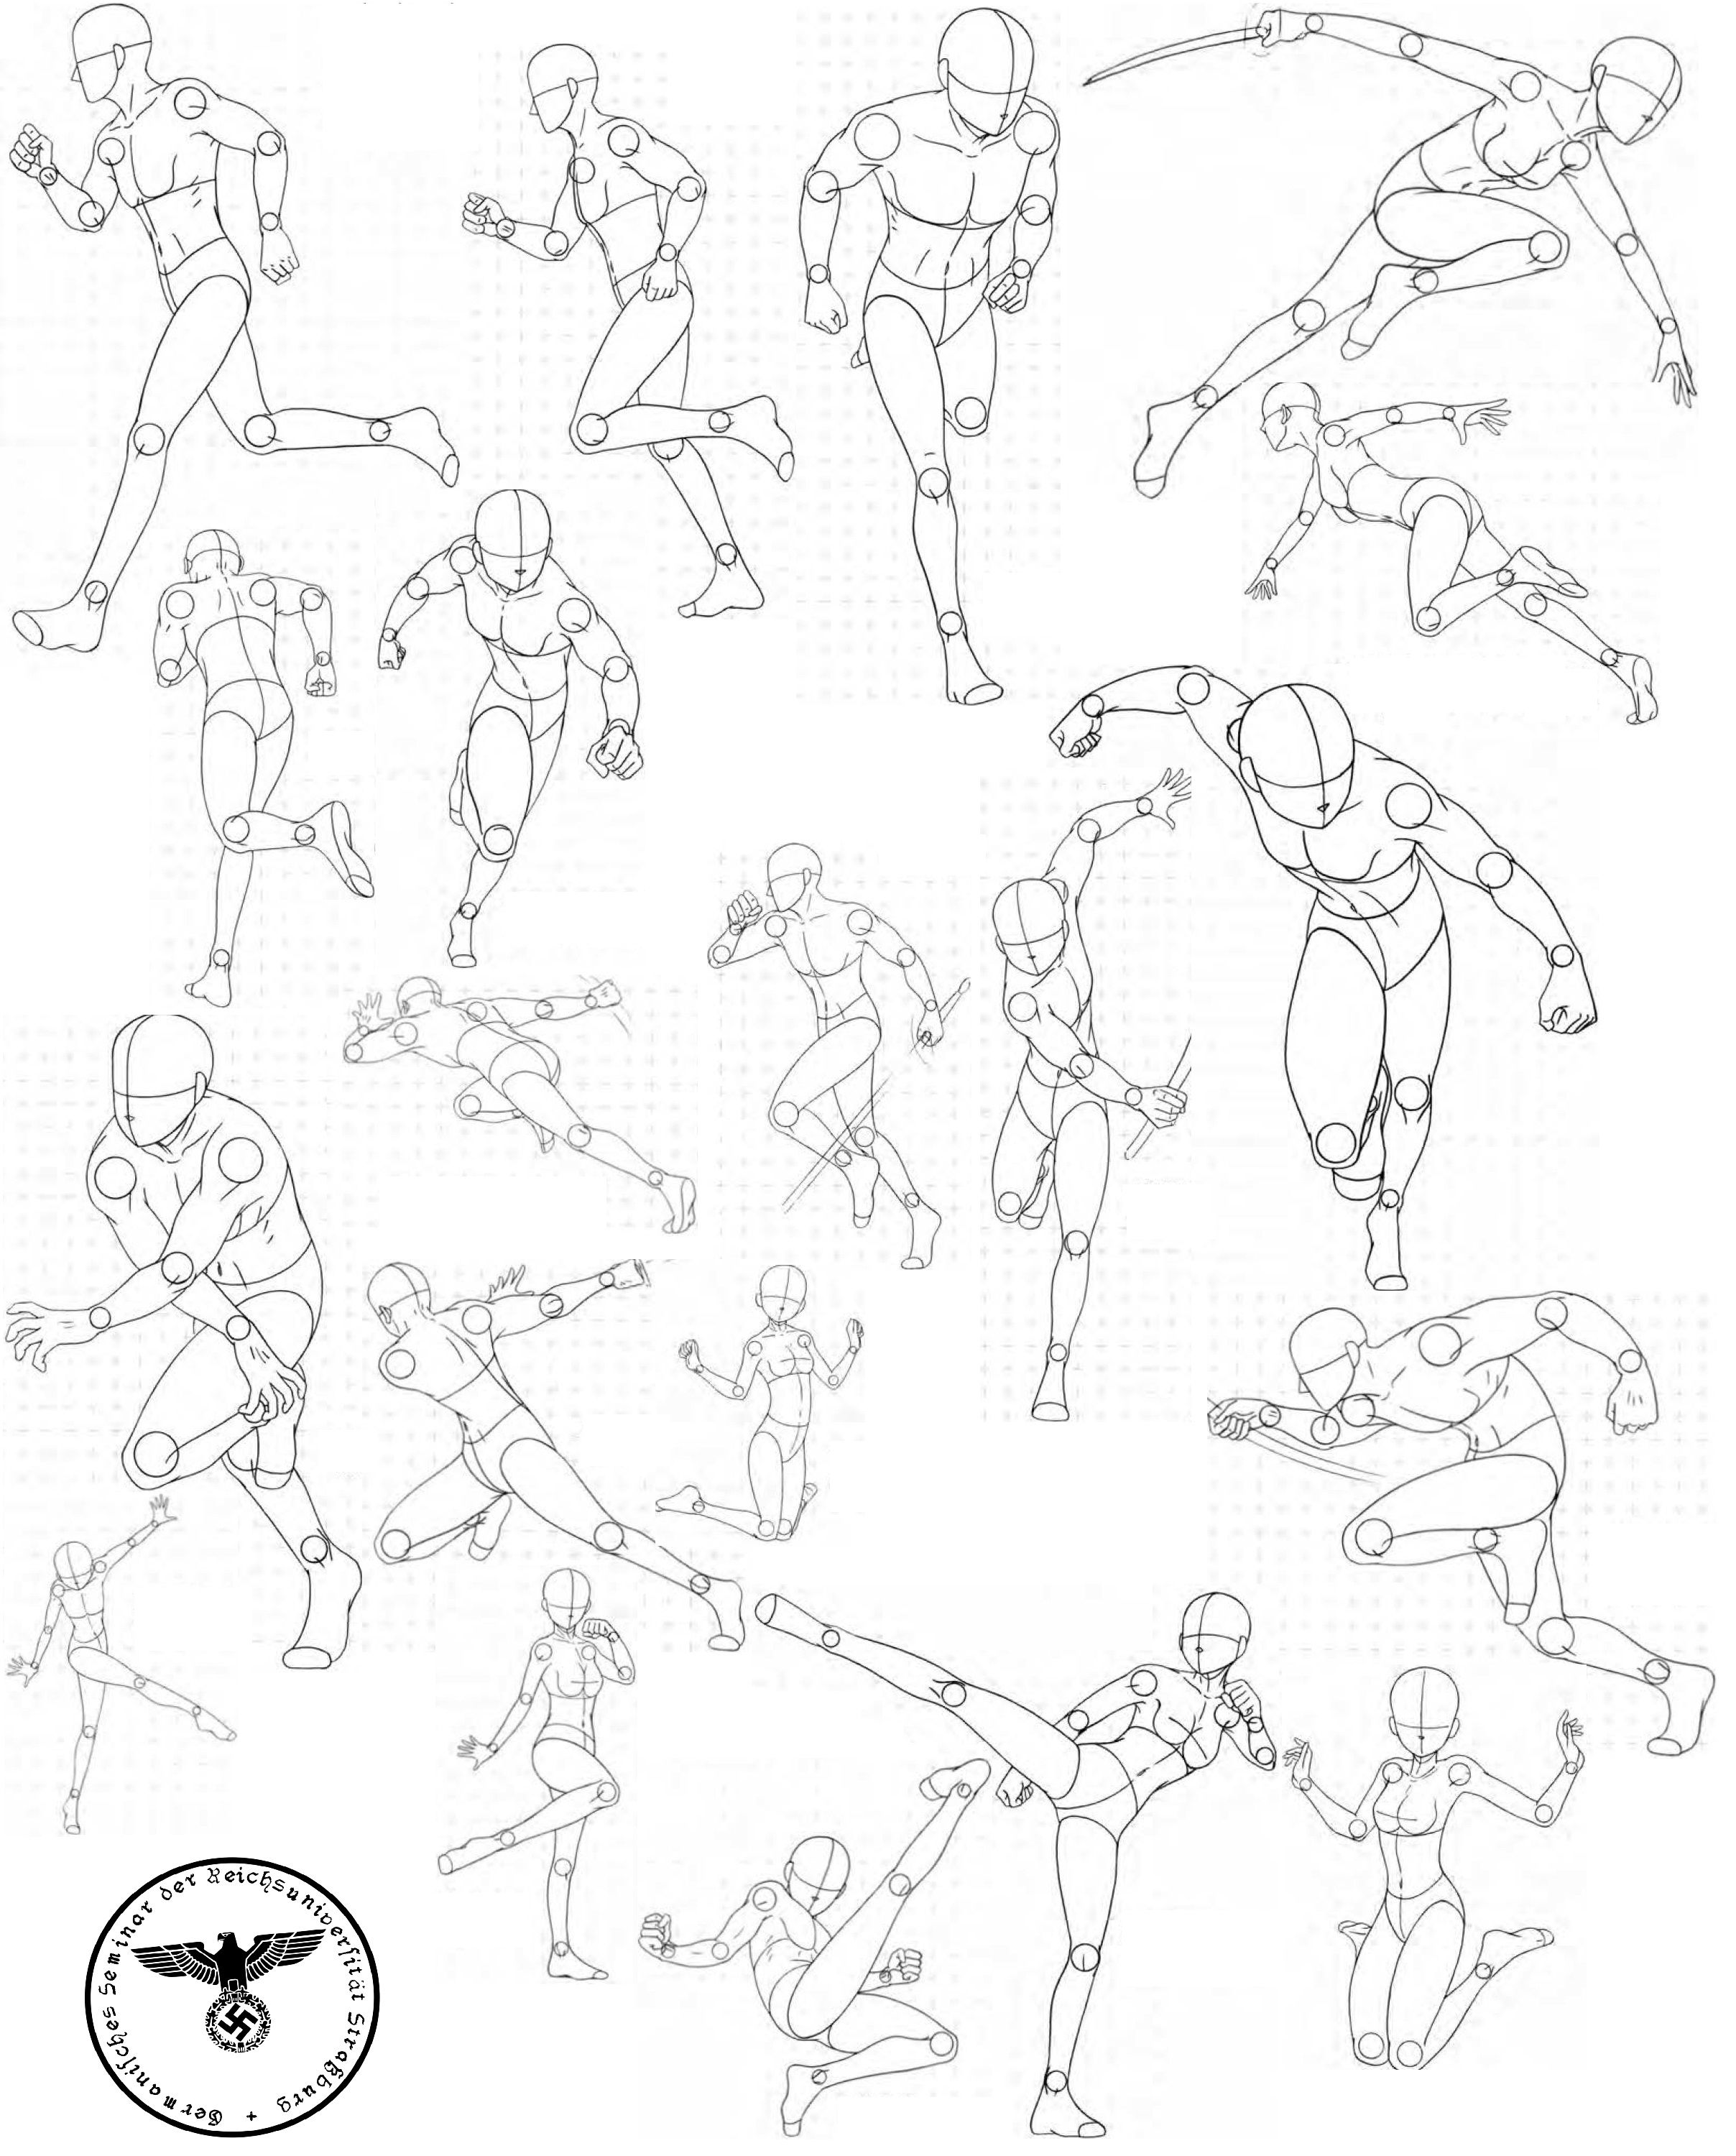 Virgin bodies 3 by fvsj on deviantart action pose reference sheet for anime manga characters